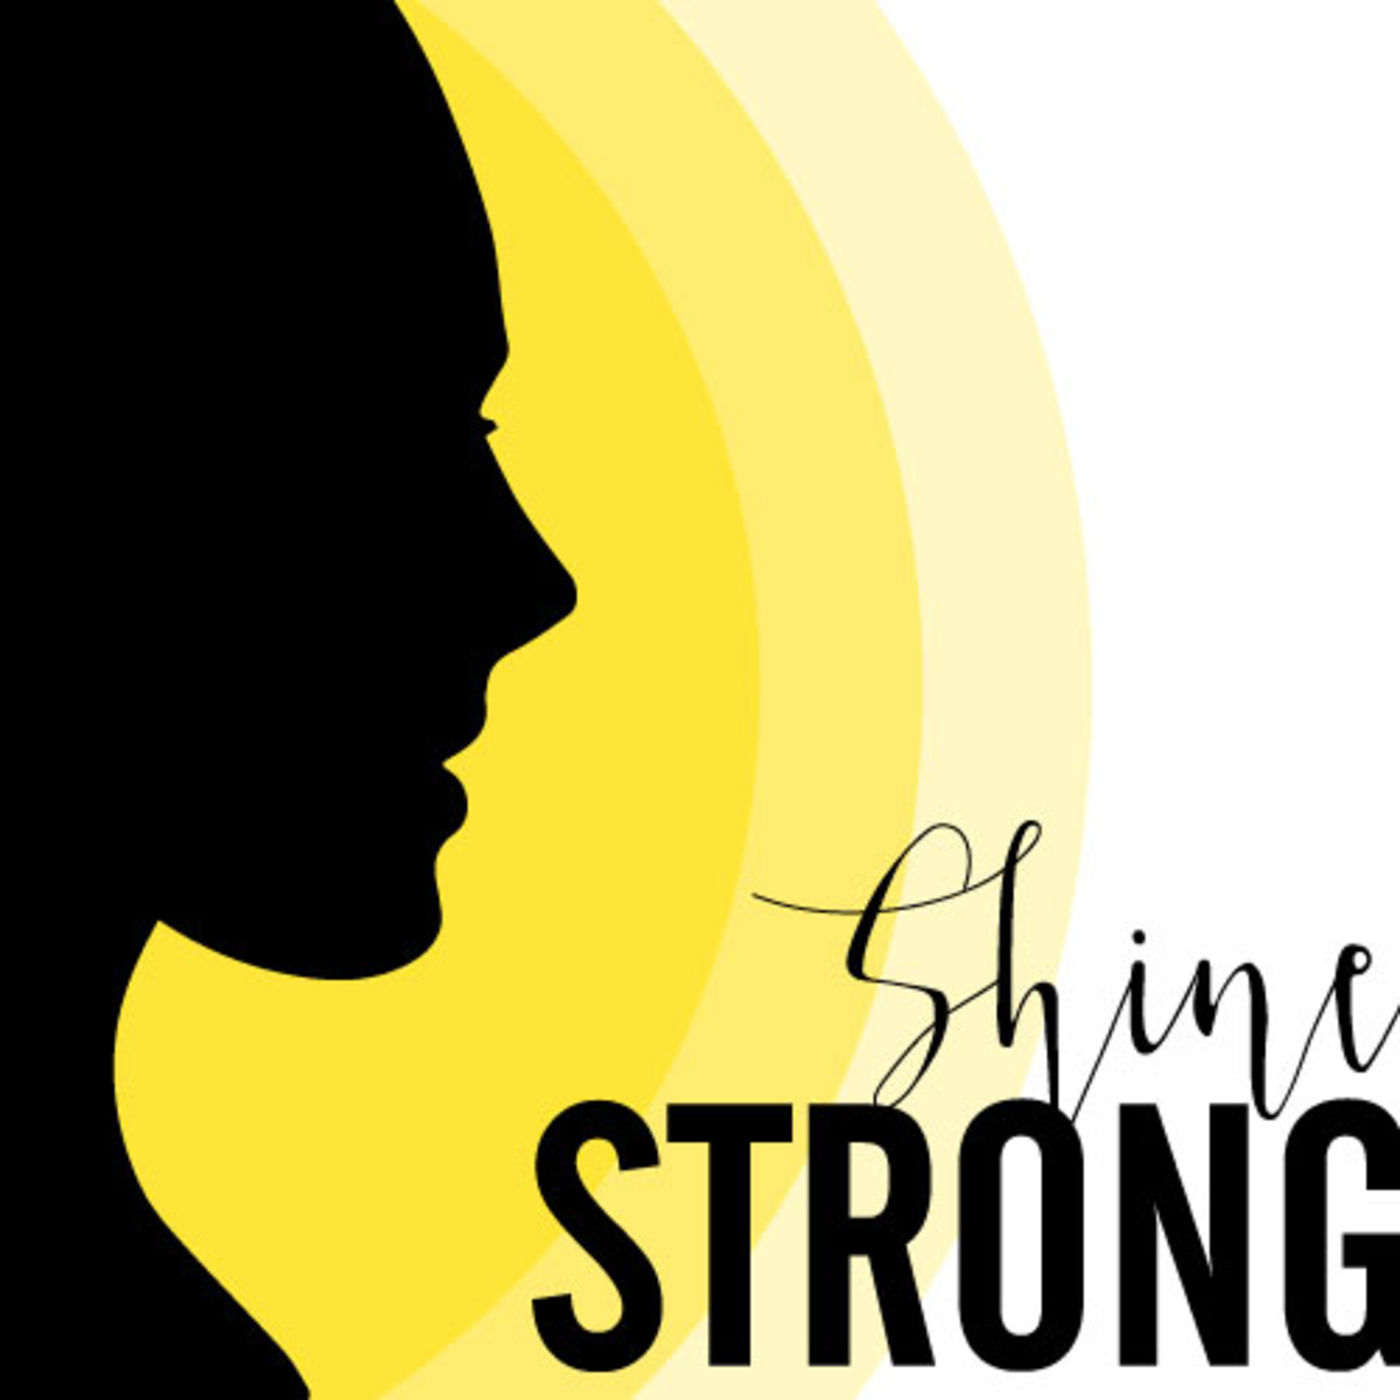 Shine Strong Podcast Image, Interview with Dr. Alison Mitzner about pregnancy, new moms, and kids health